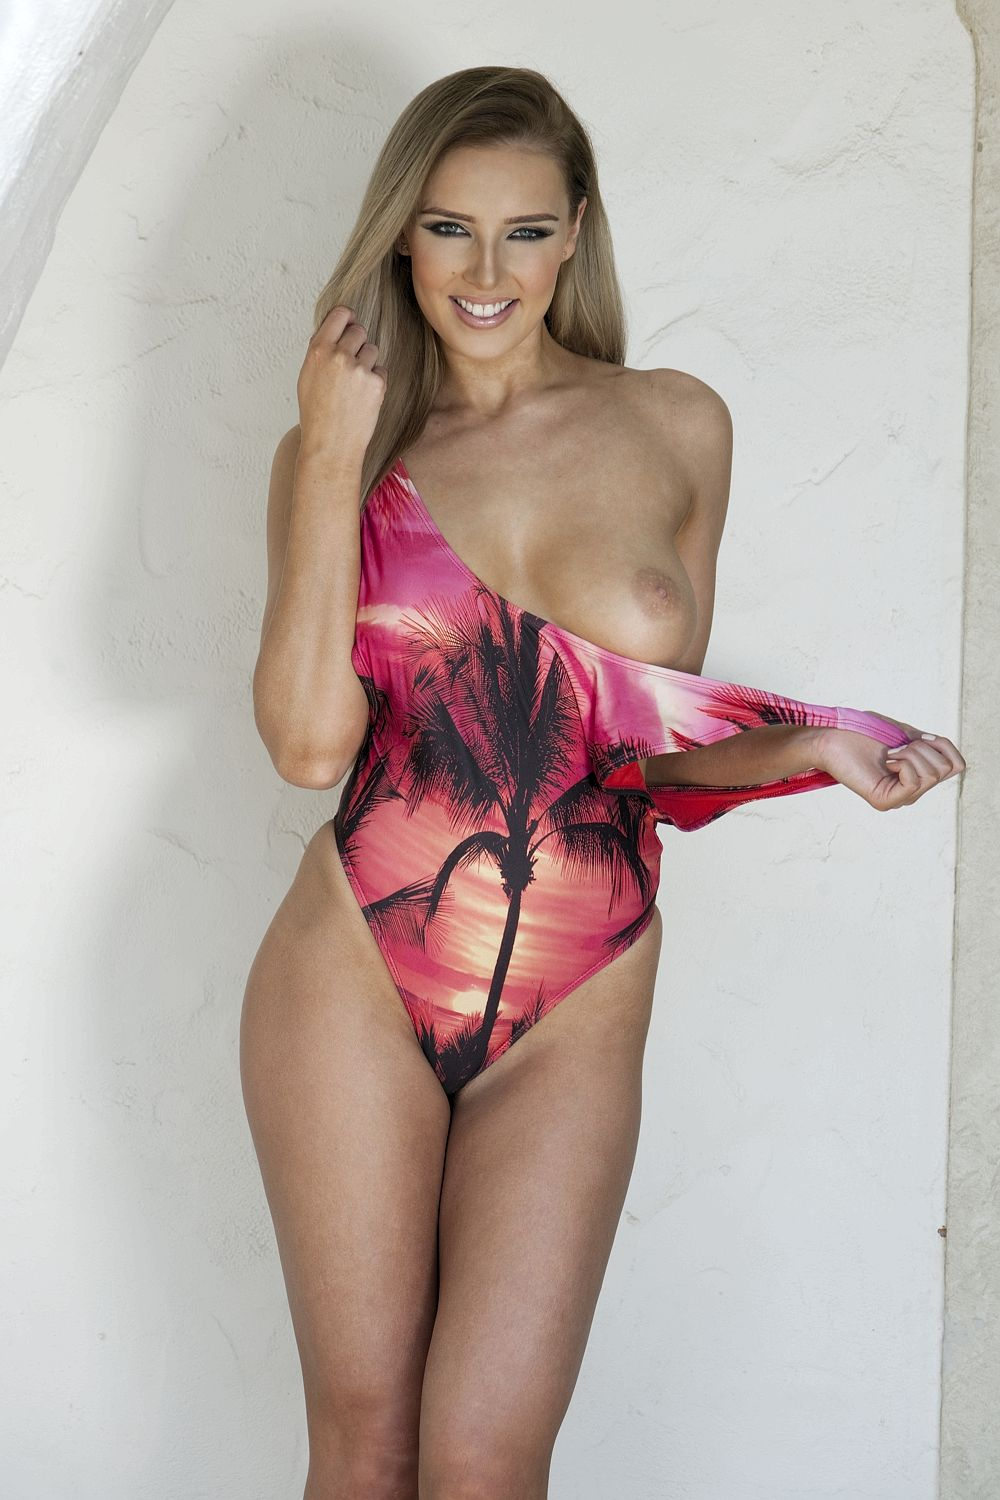 Lissy Cunningham Topless (3 Sexy Photos)